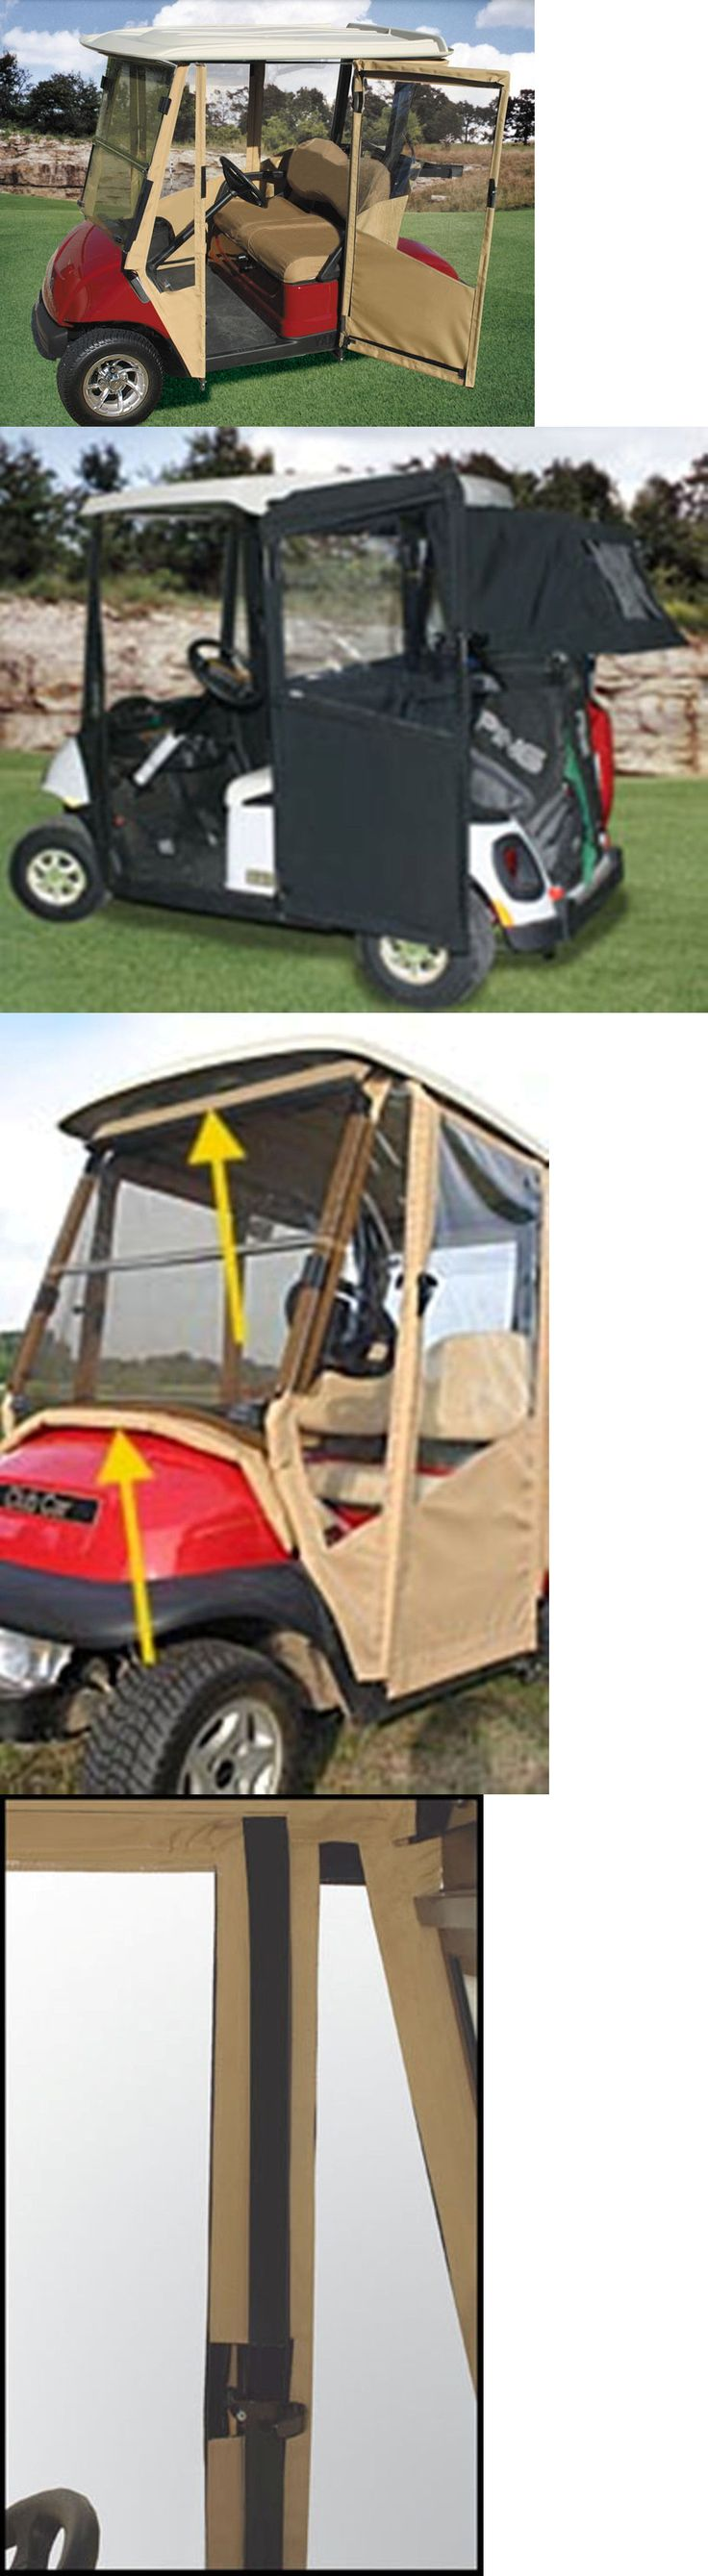 Other Golf Accessories 1514: Doorworks Club Car Precedent Sunbrella Golf Cart Enclosure Hinged Doors In St -> BUY IT NOW ONLY: $639 on eBay!